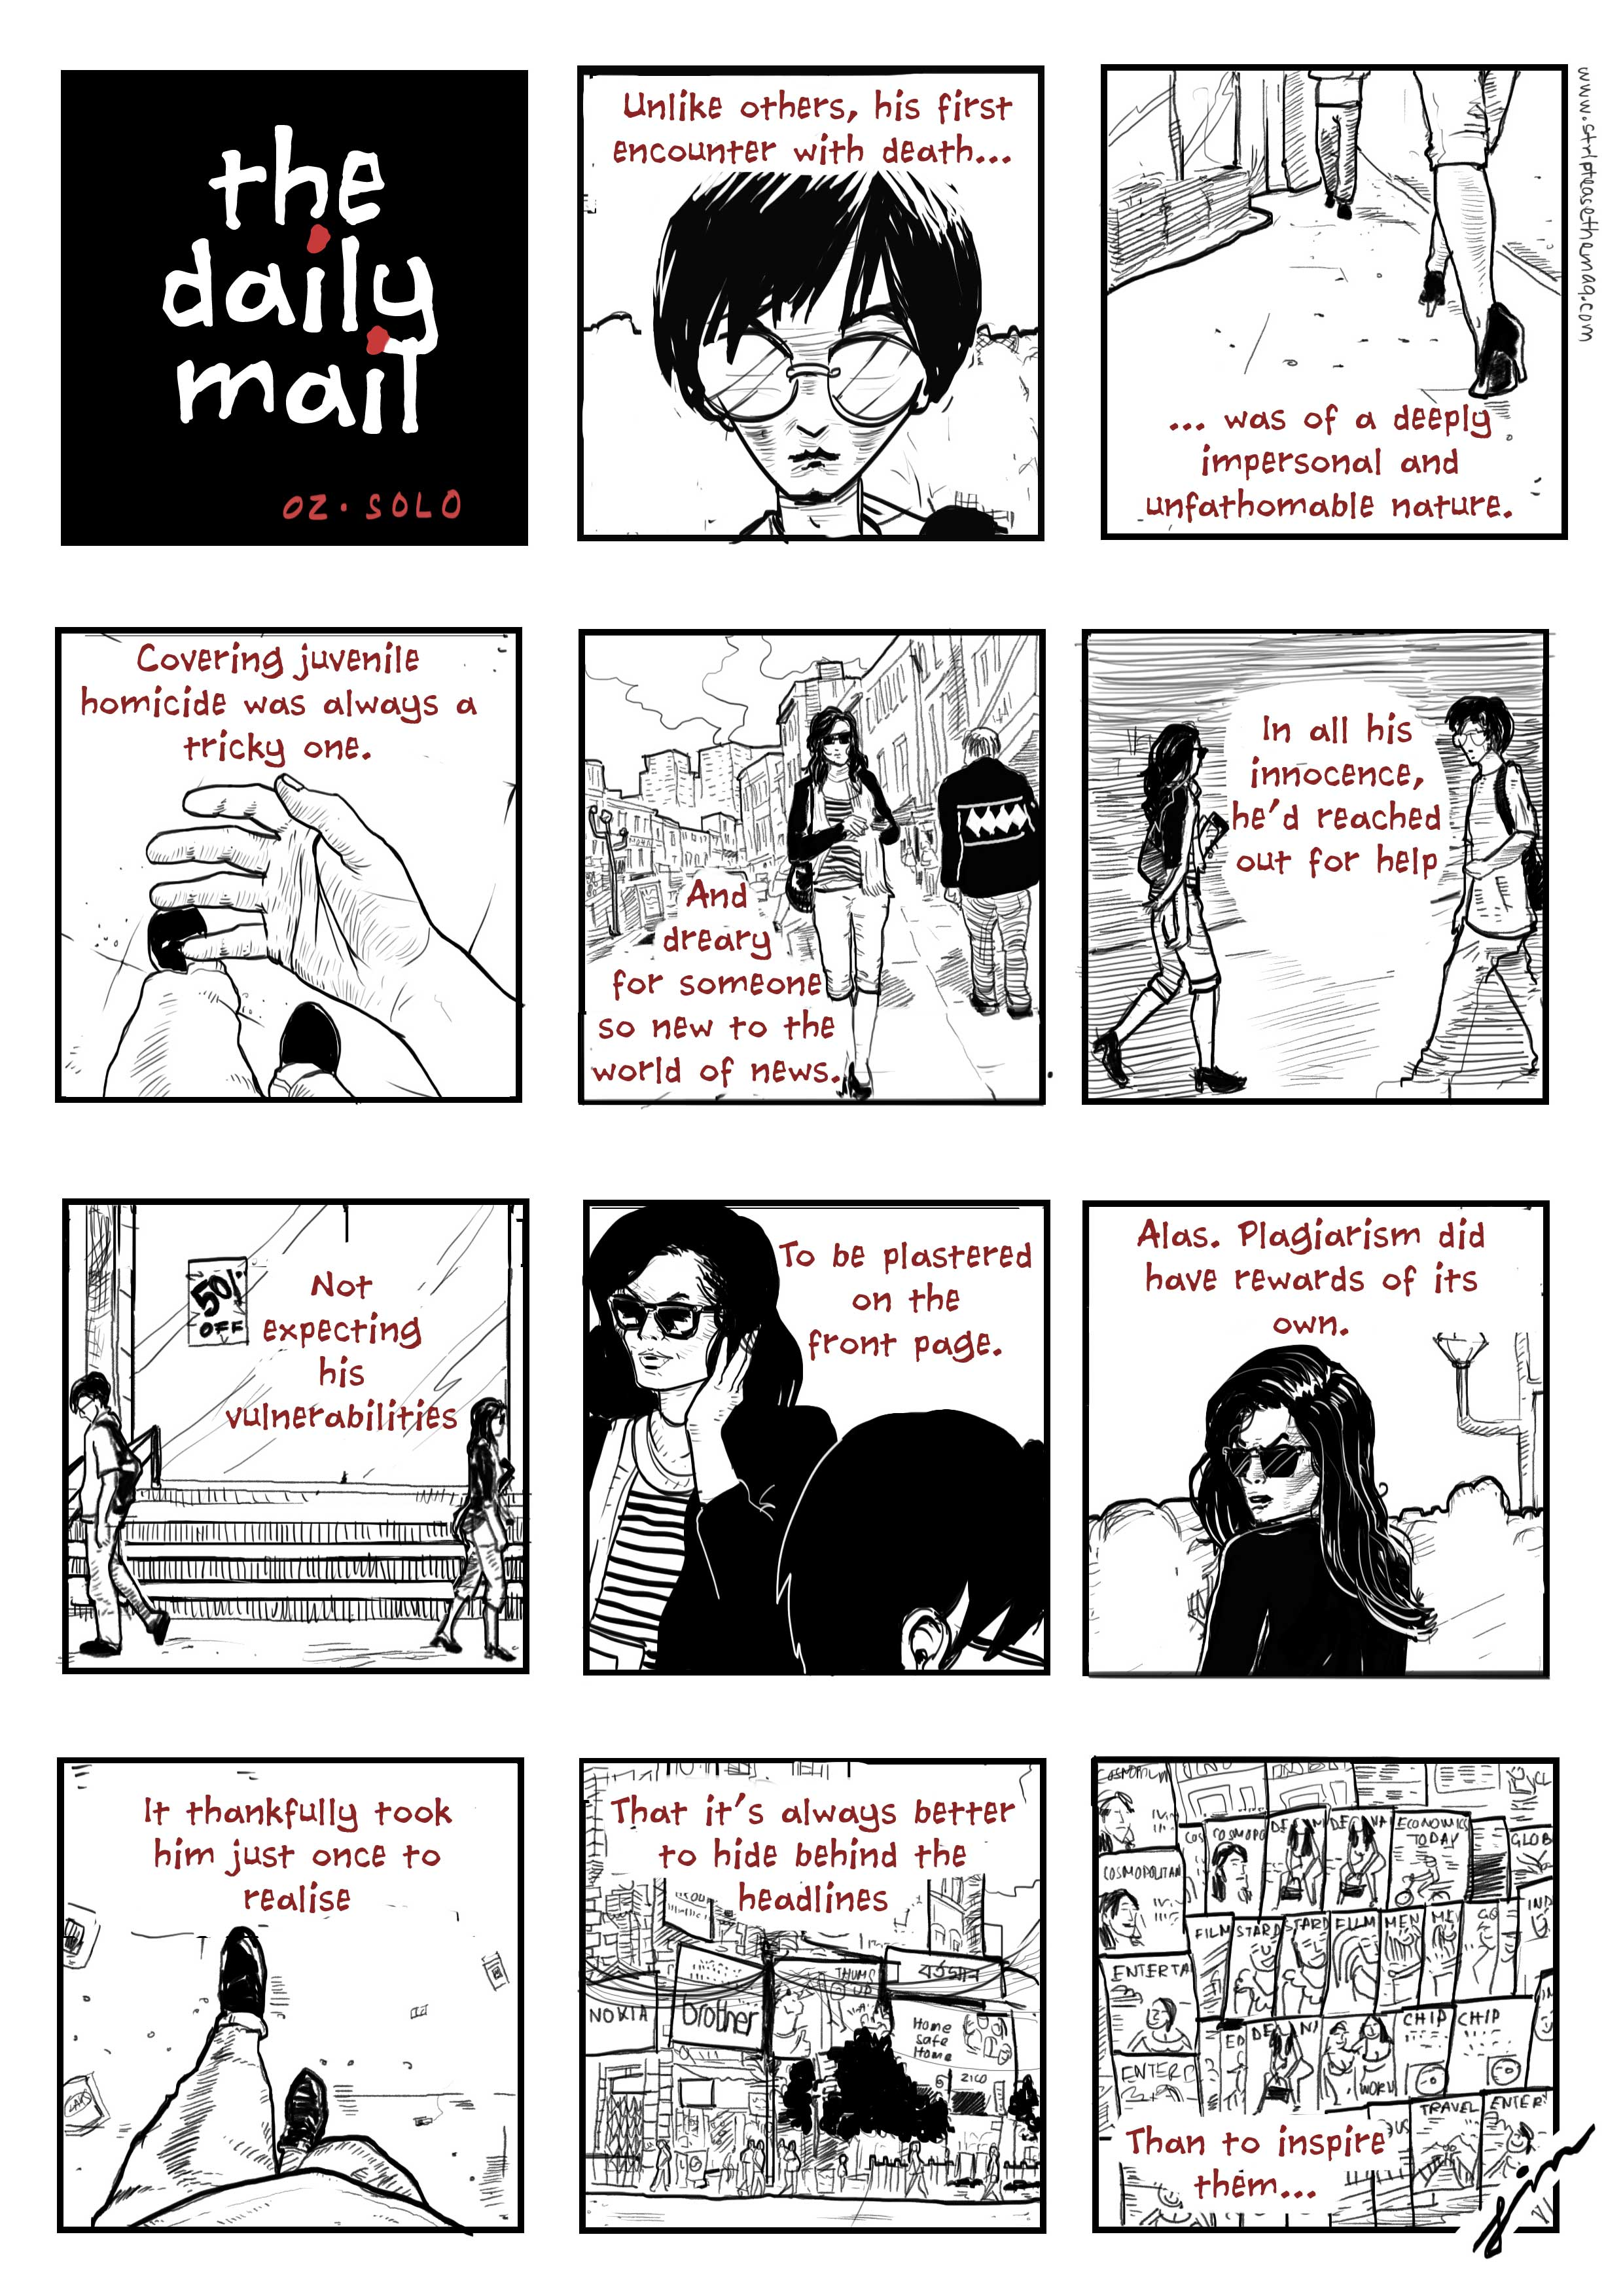 Sunday-Comics-09---The-Daily-Mail